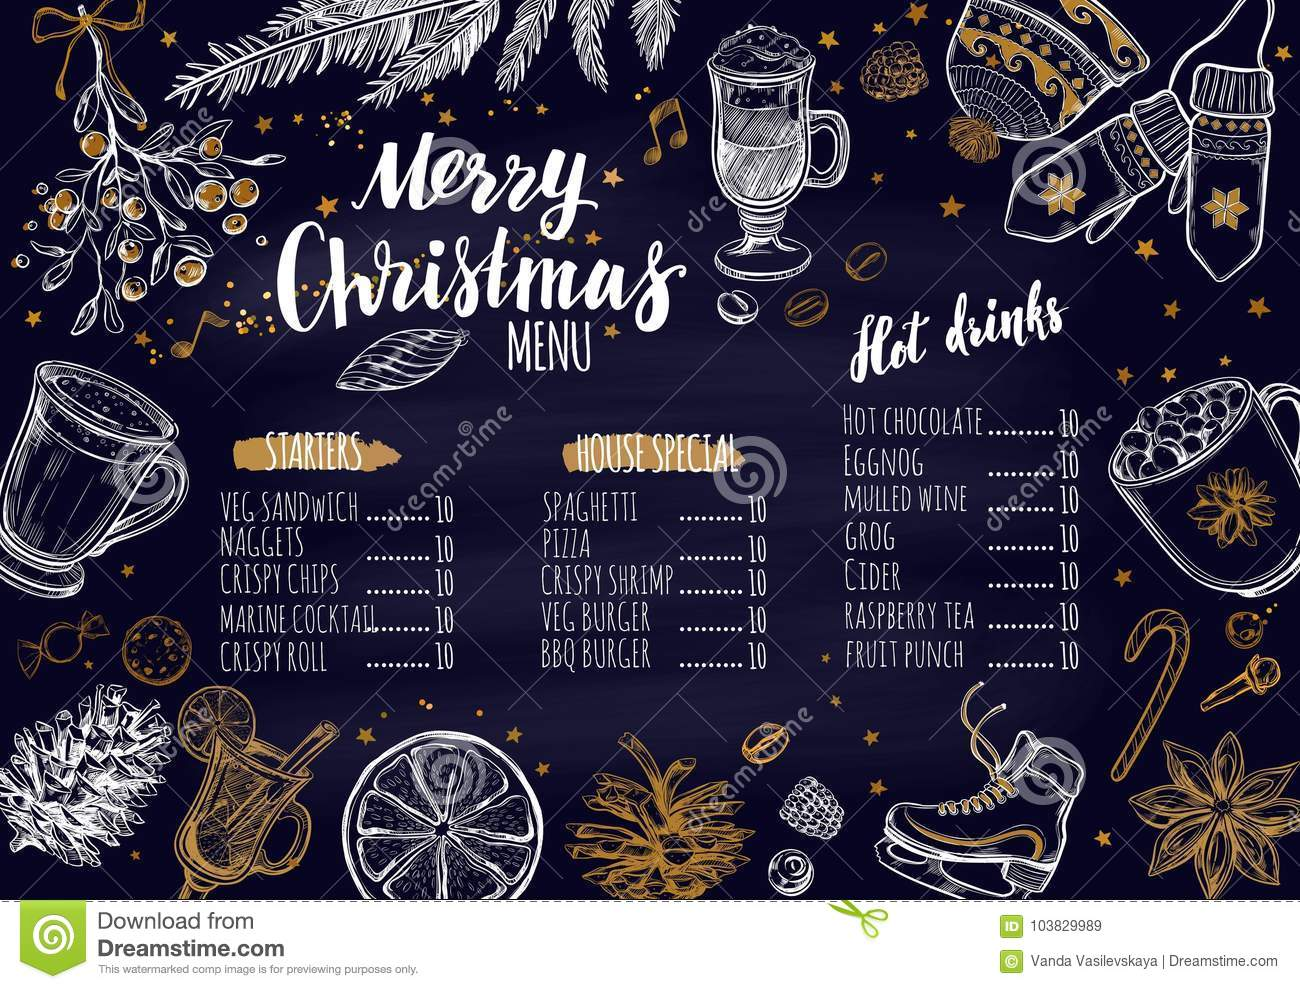 merry christmas festive winter menu on chalkboard design template